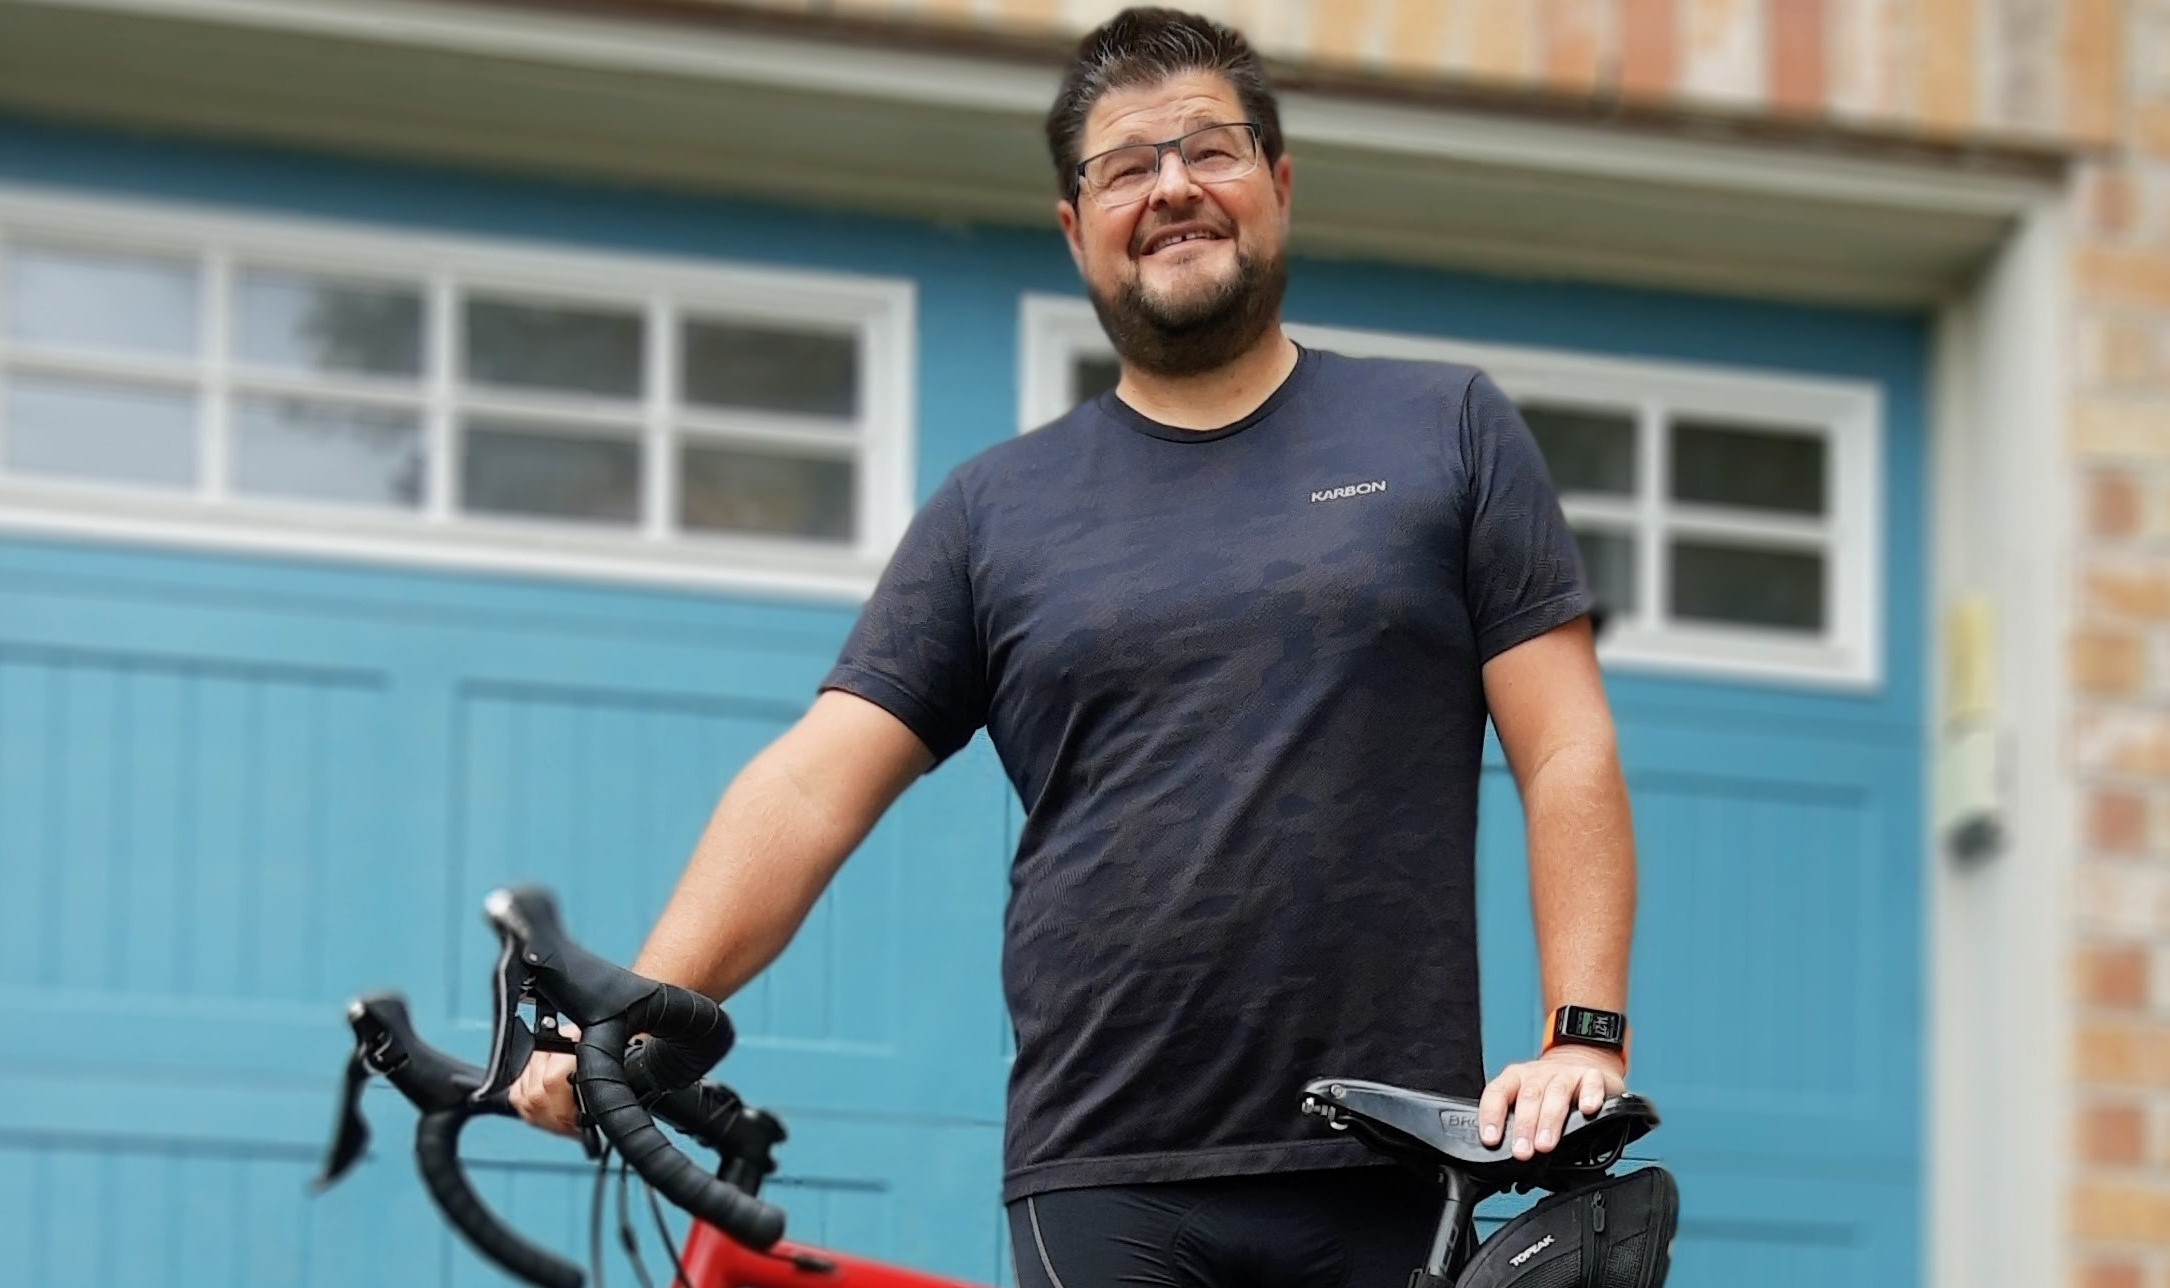 Jeff Tindall –  Let's Bike Stittsville!